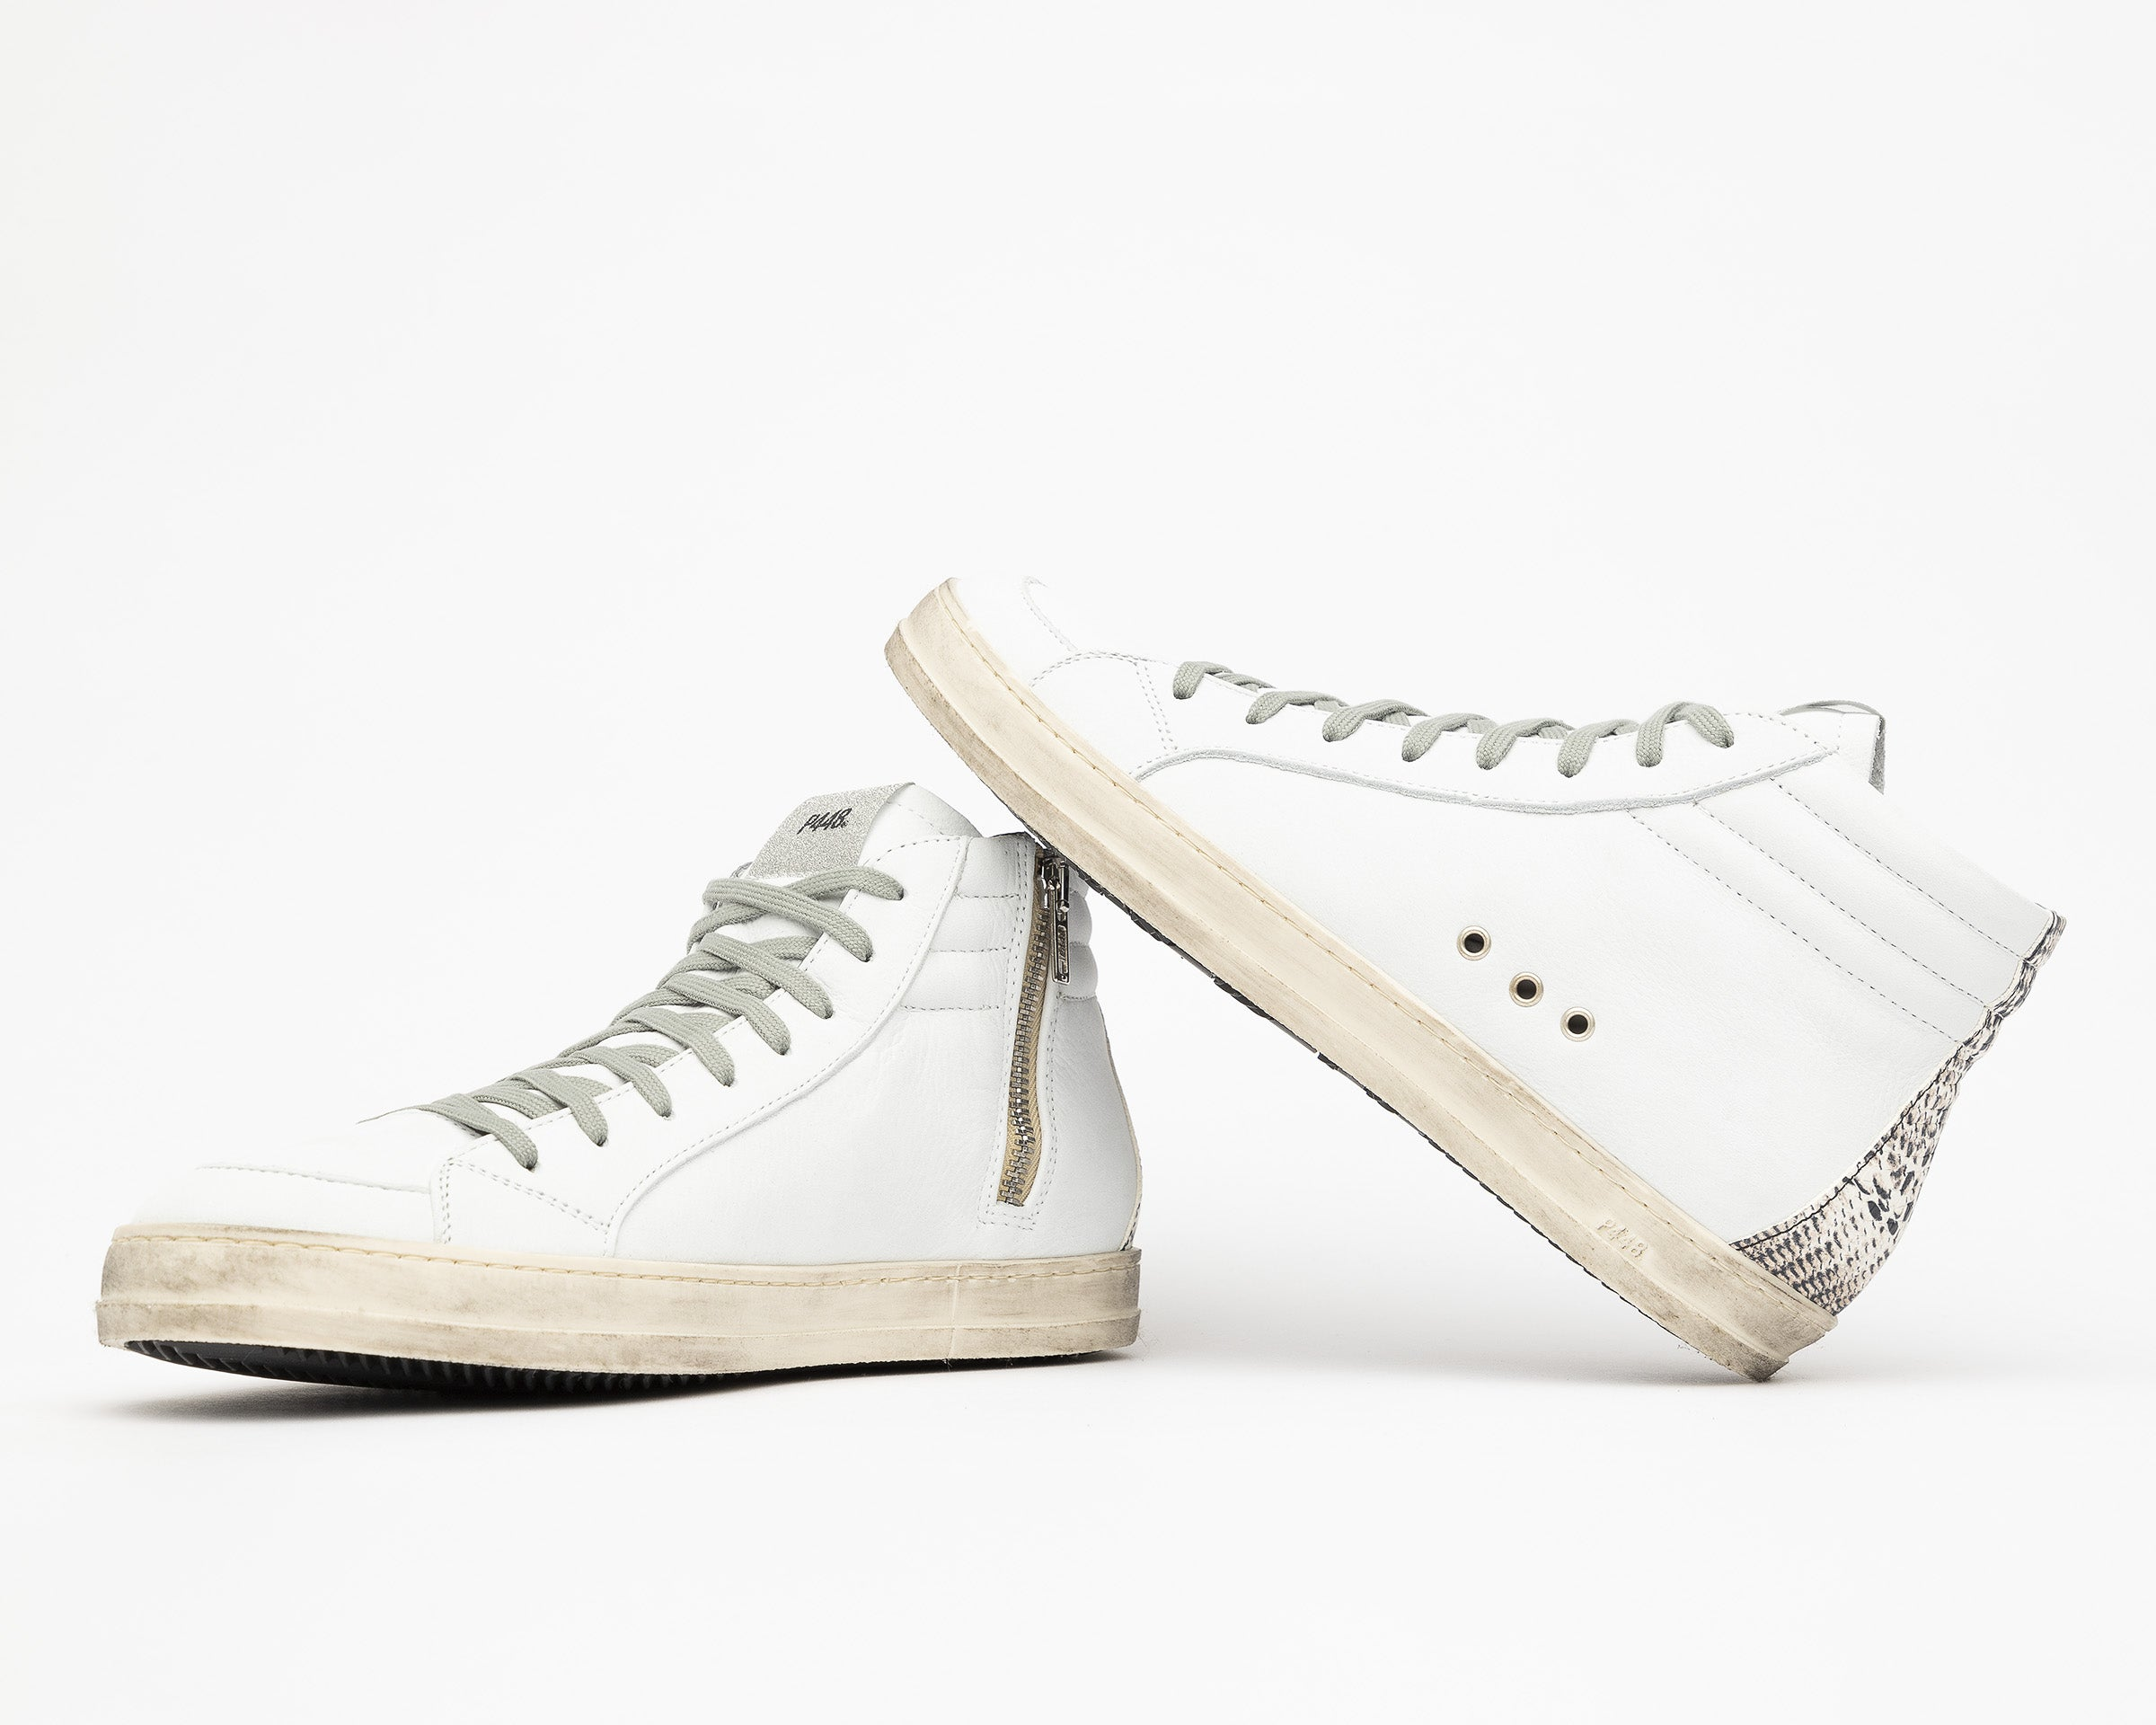 Skate High-Top Sneaker in White/Twister Python - Detail 2